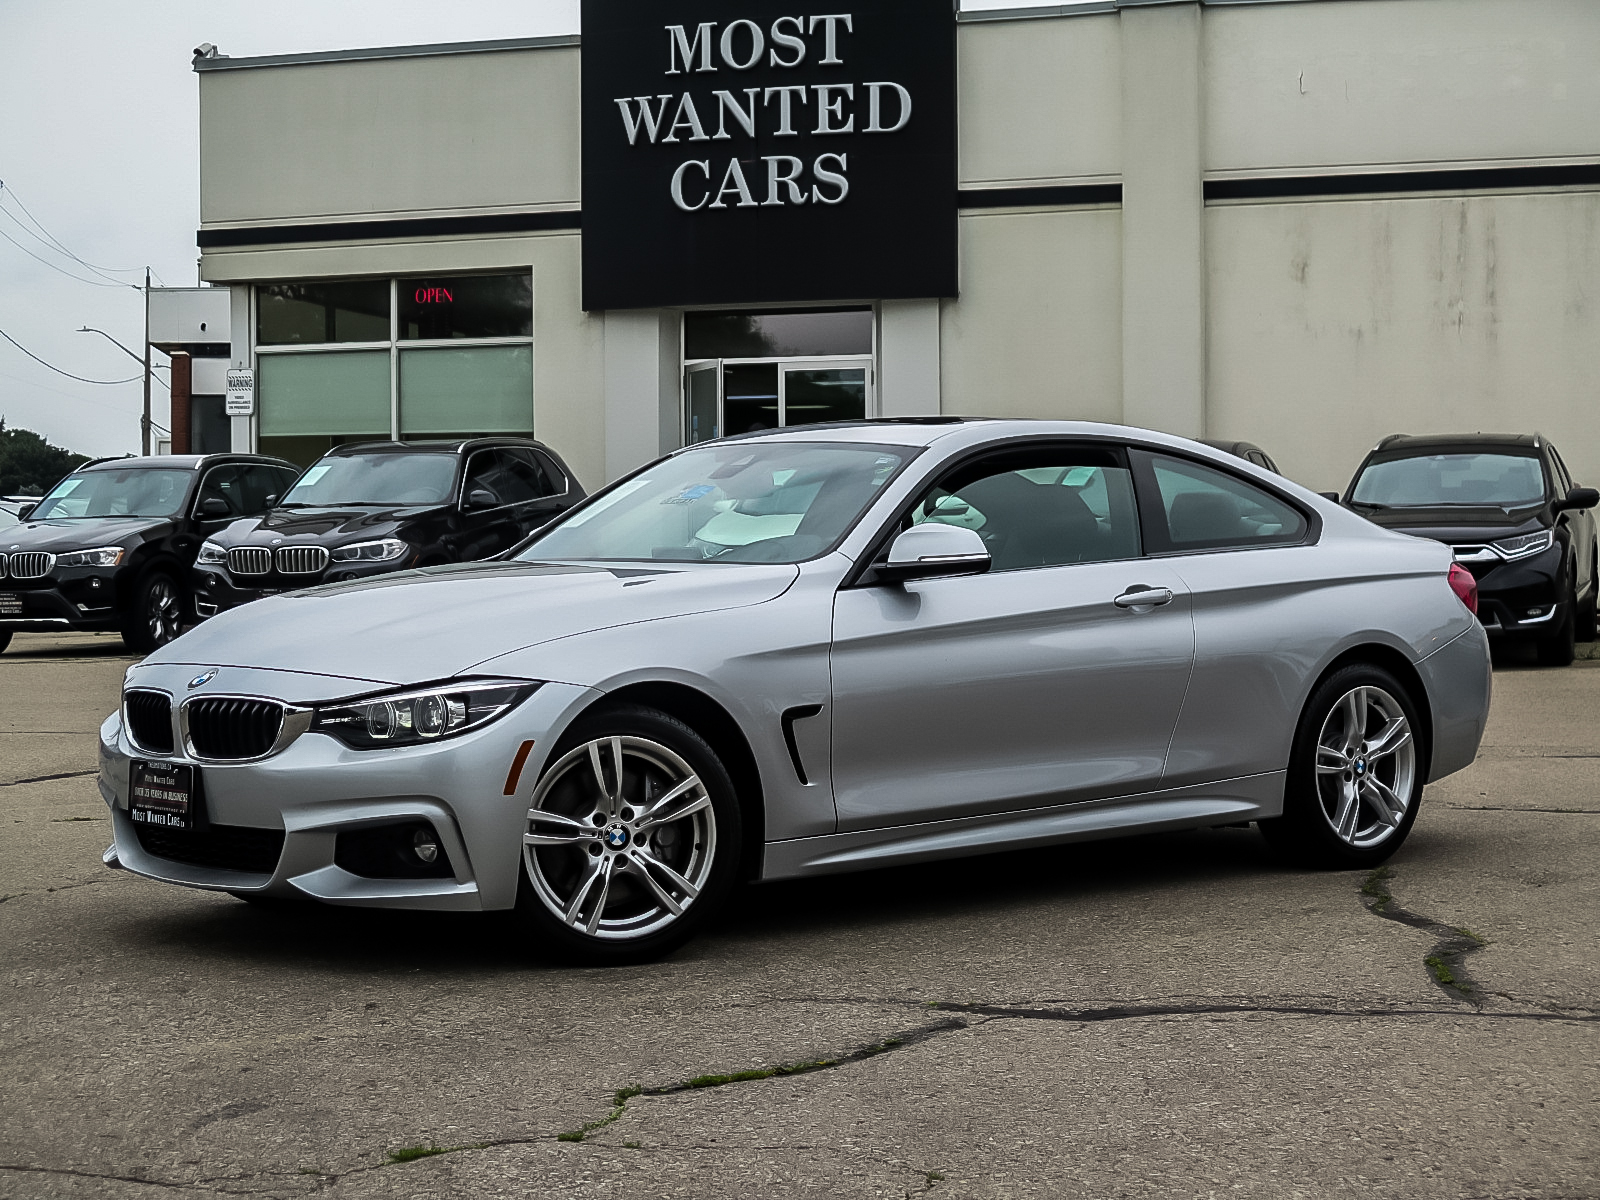 used 2019 BMW 430i car, priced at $35,492